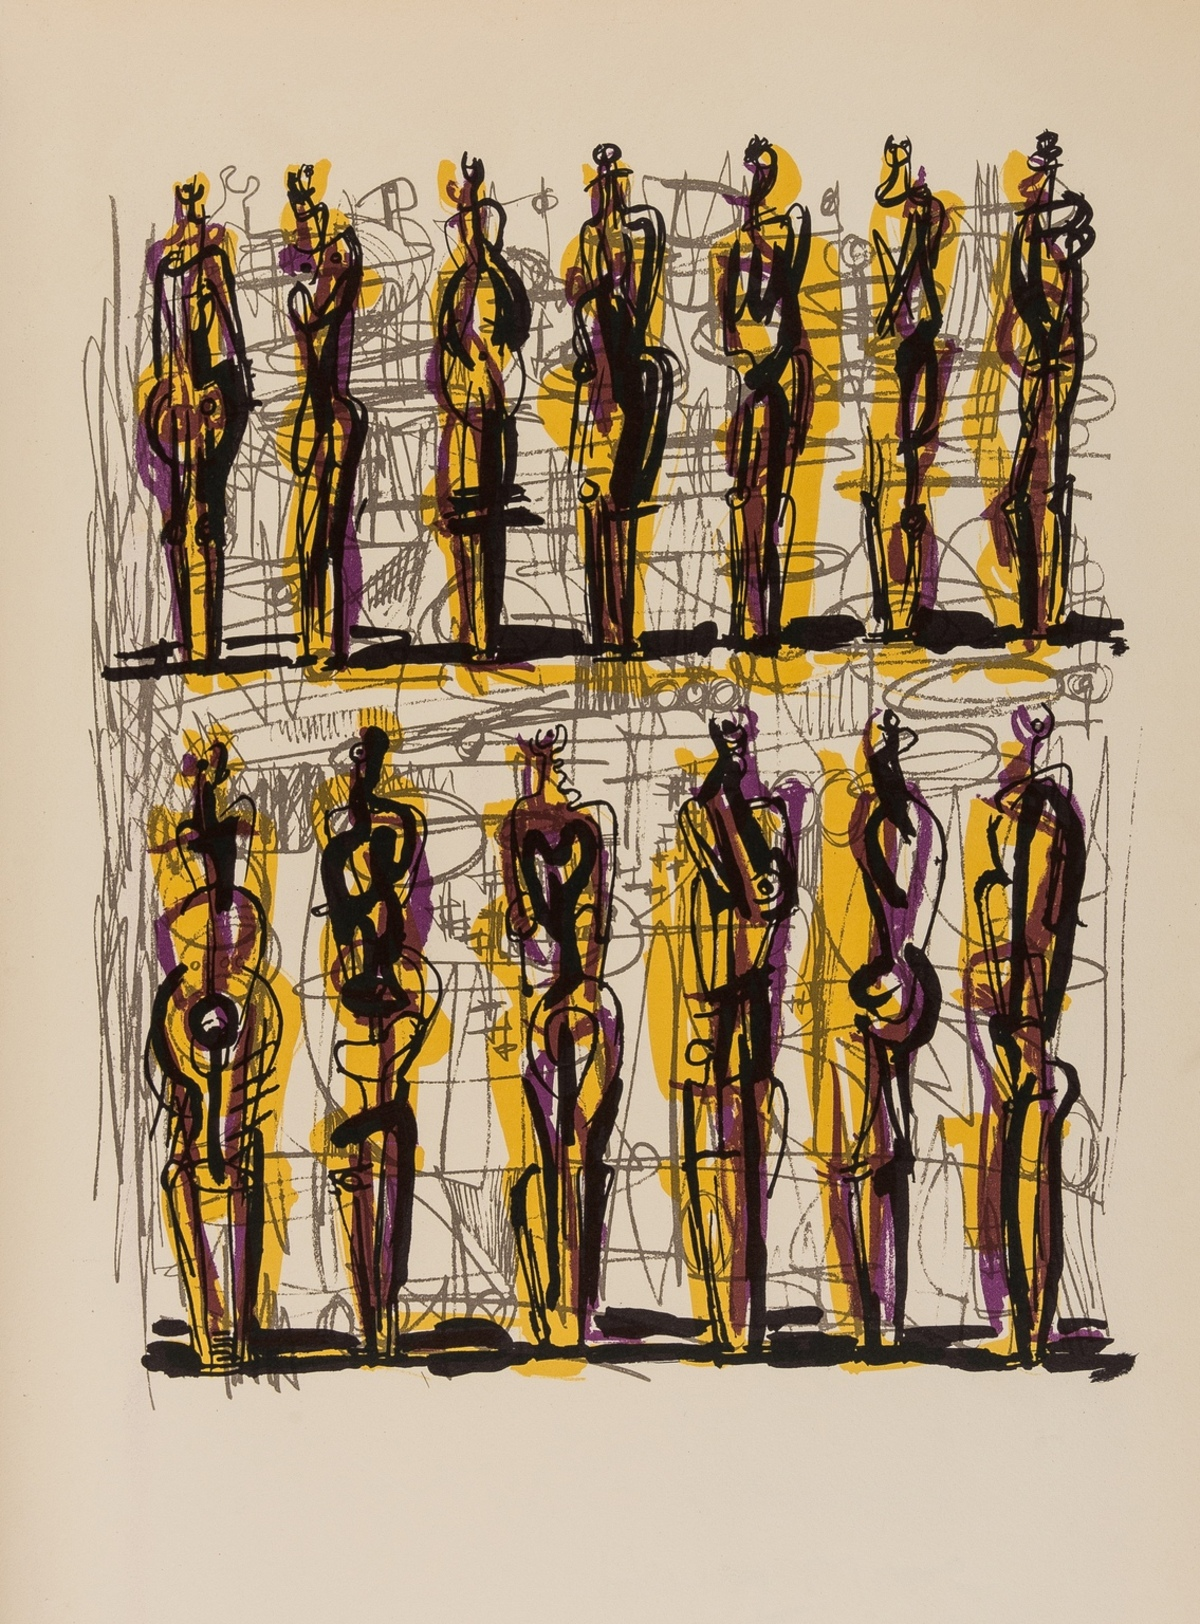 Henry Moore (1896-1986) Heads Figures and Ideas (Cramer 149)